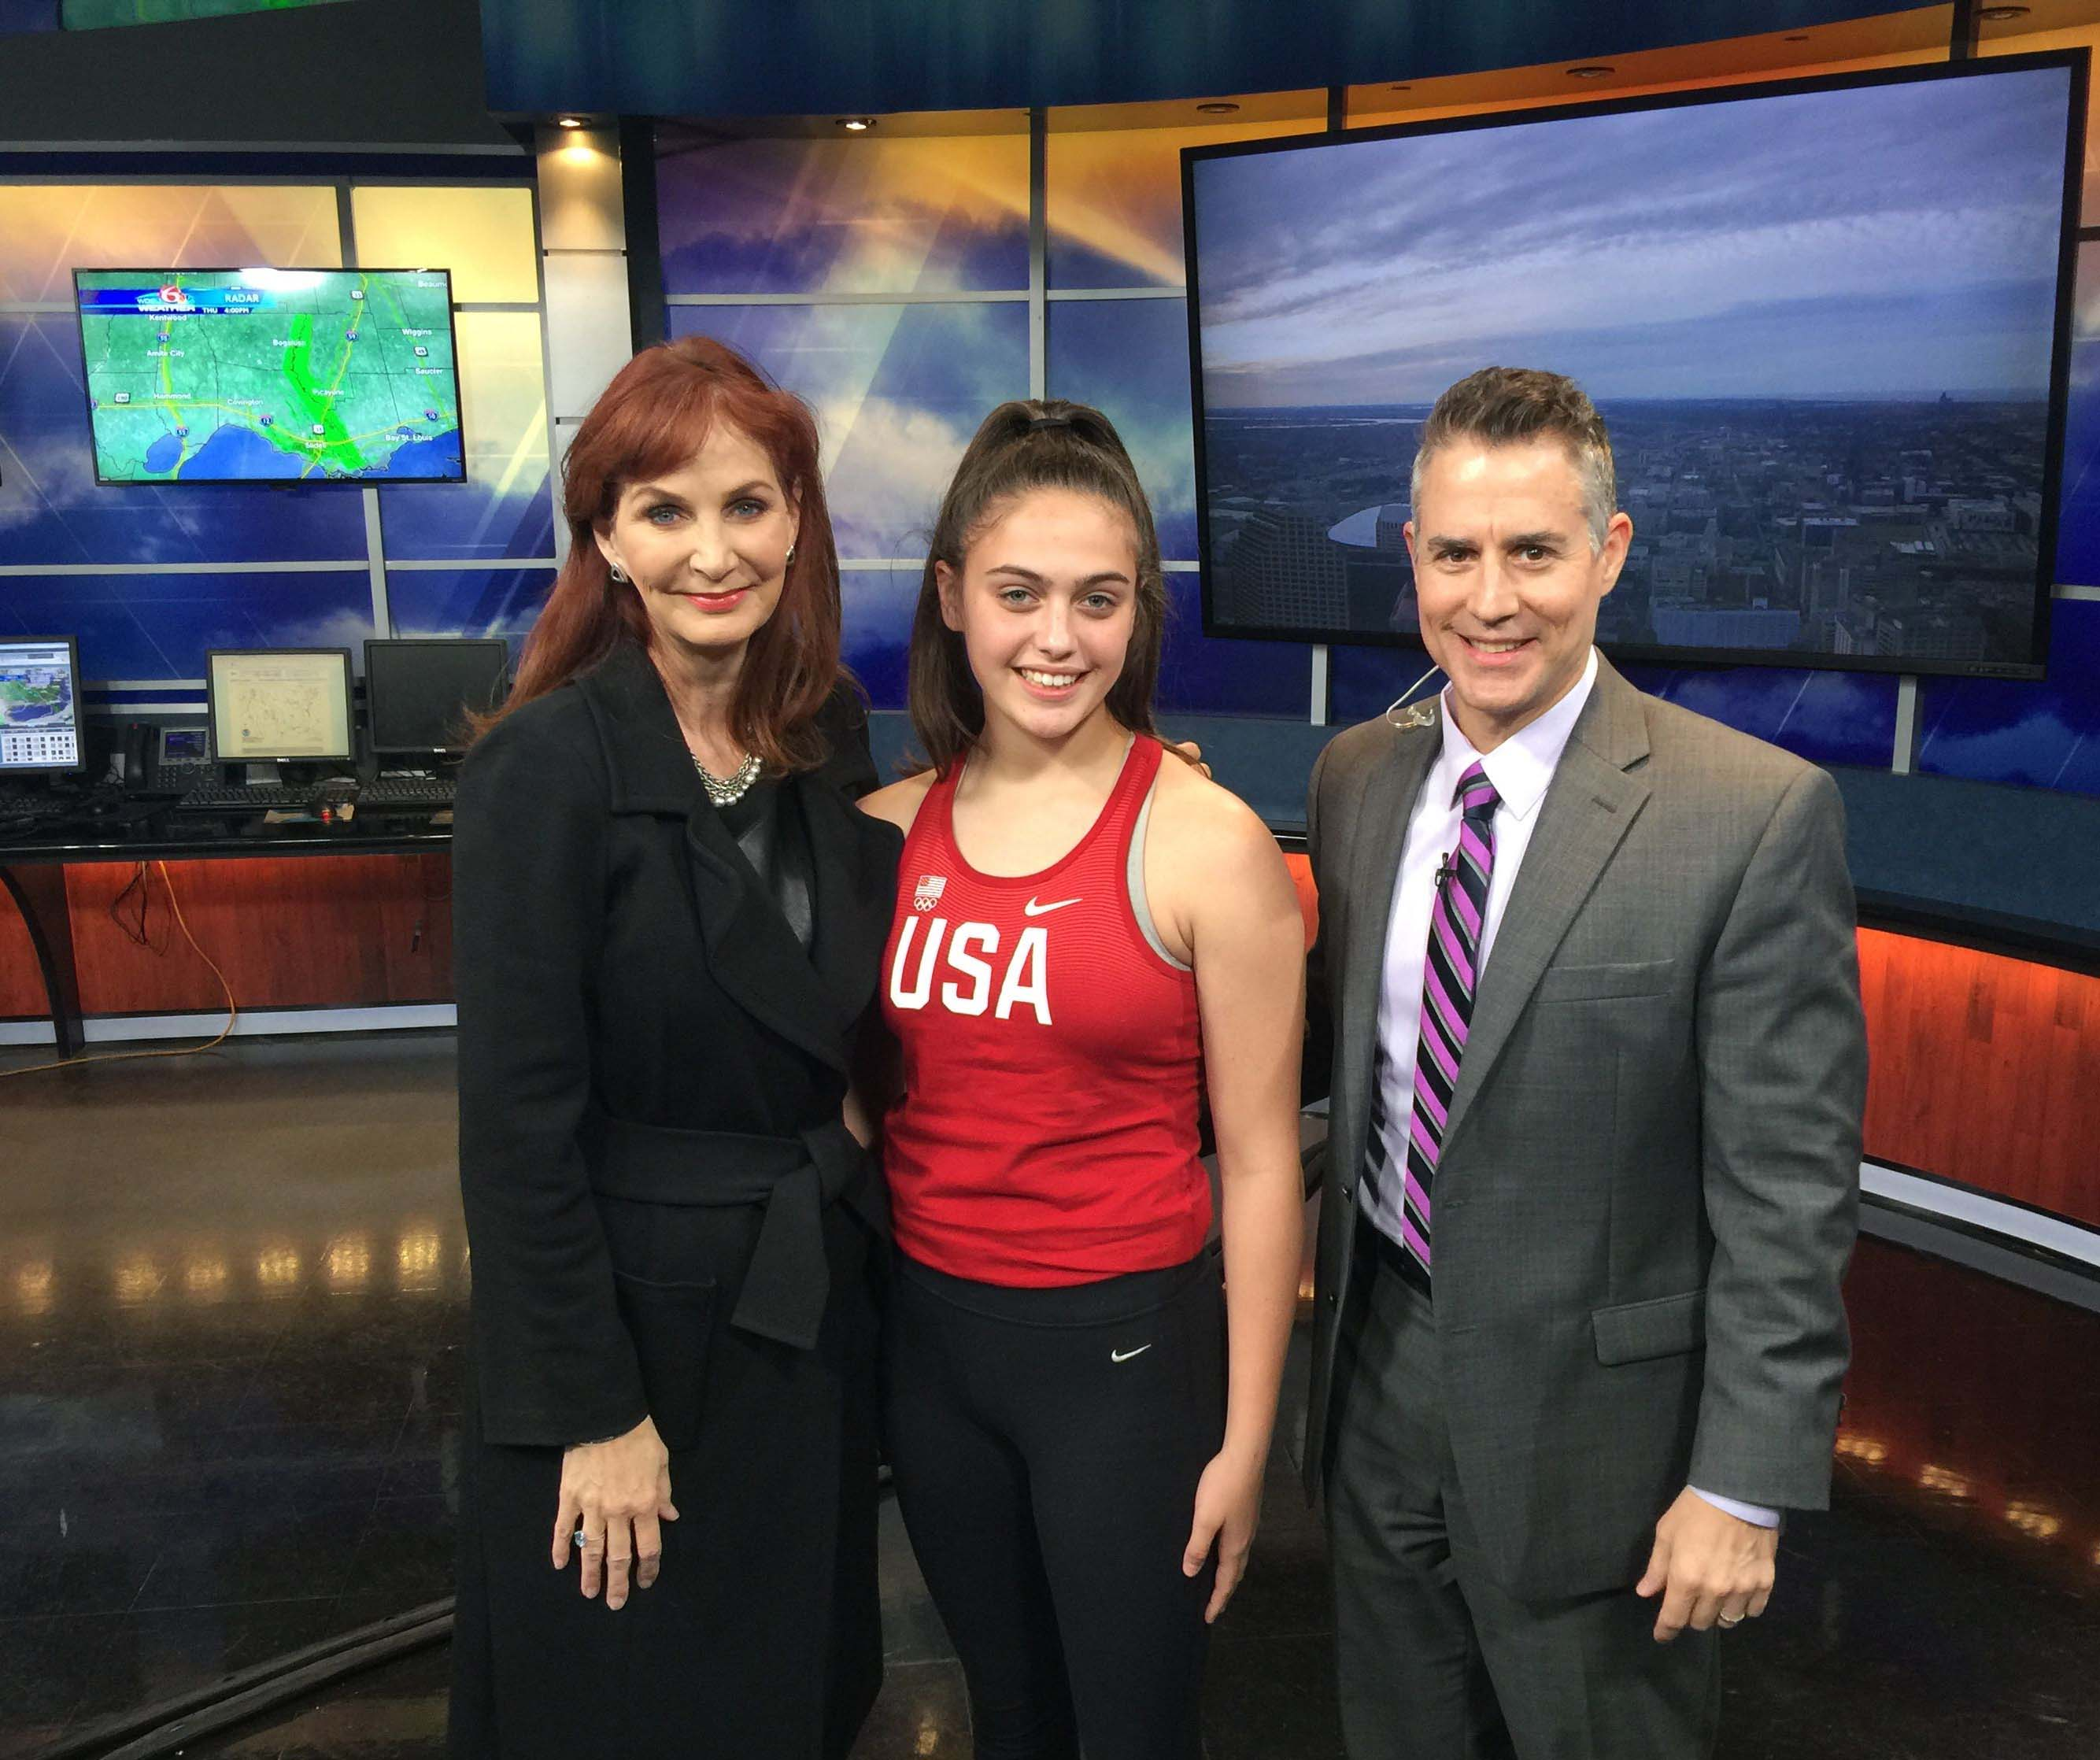 USA Team Member Alexis Lavarine with Meteorologist Margaret Orr